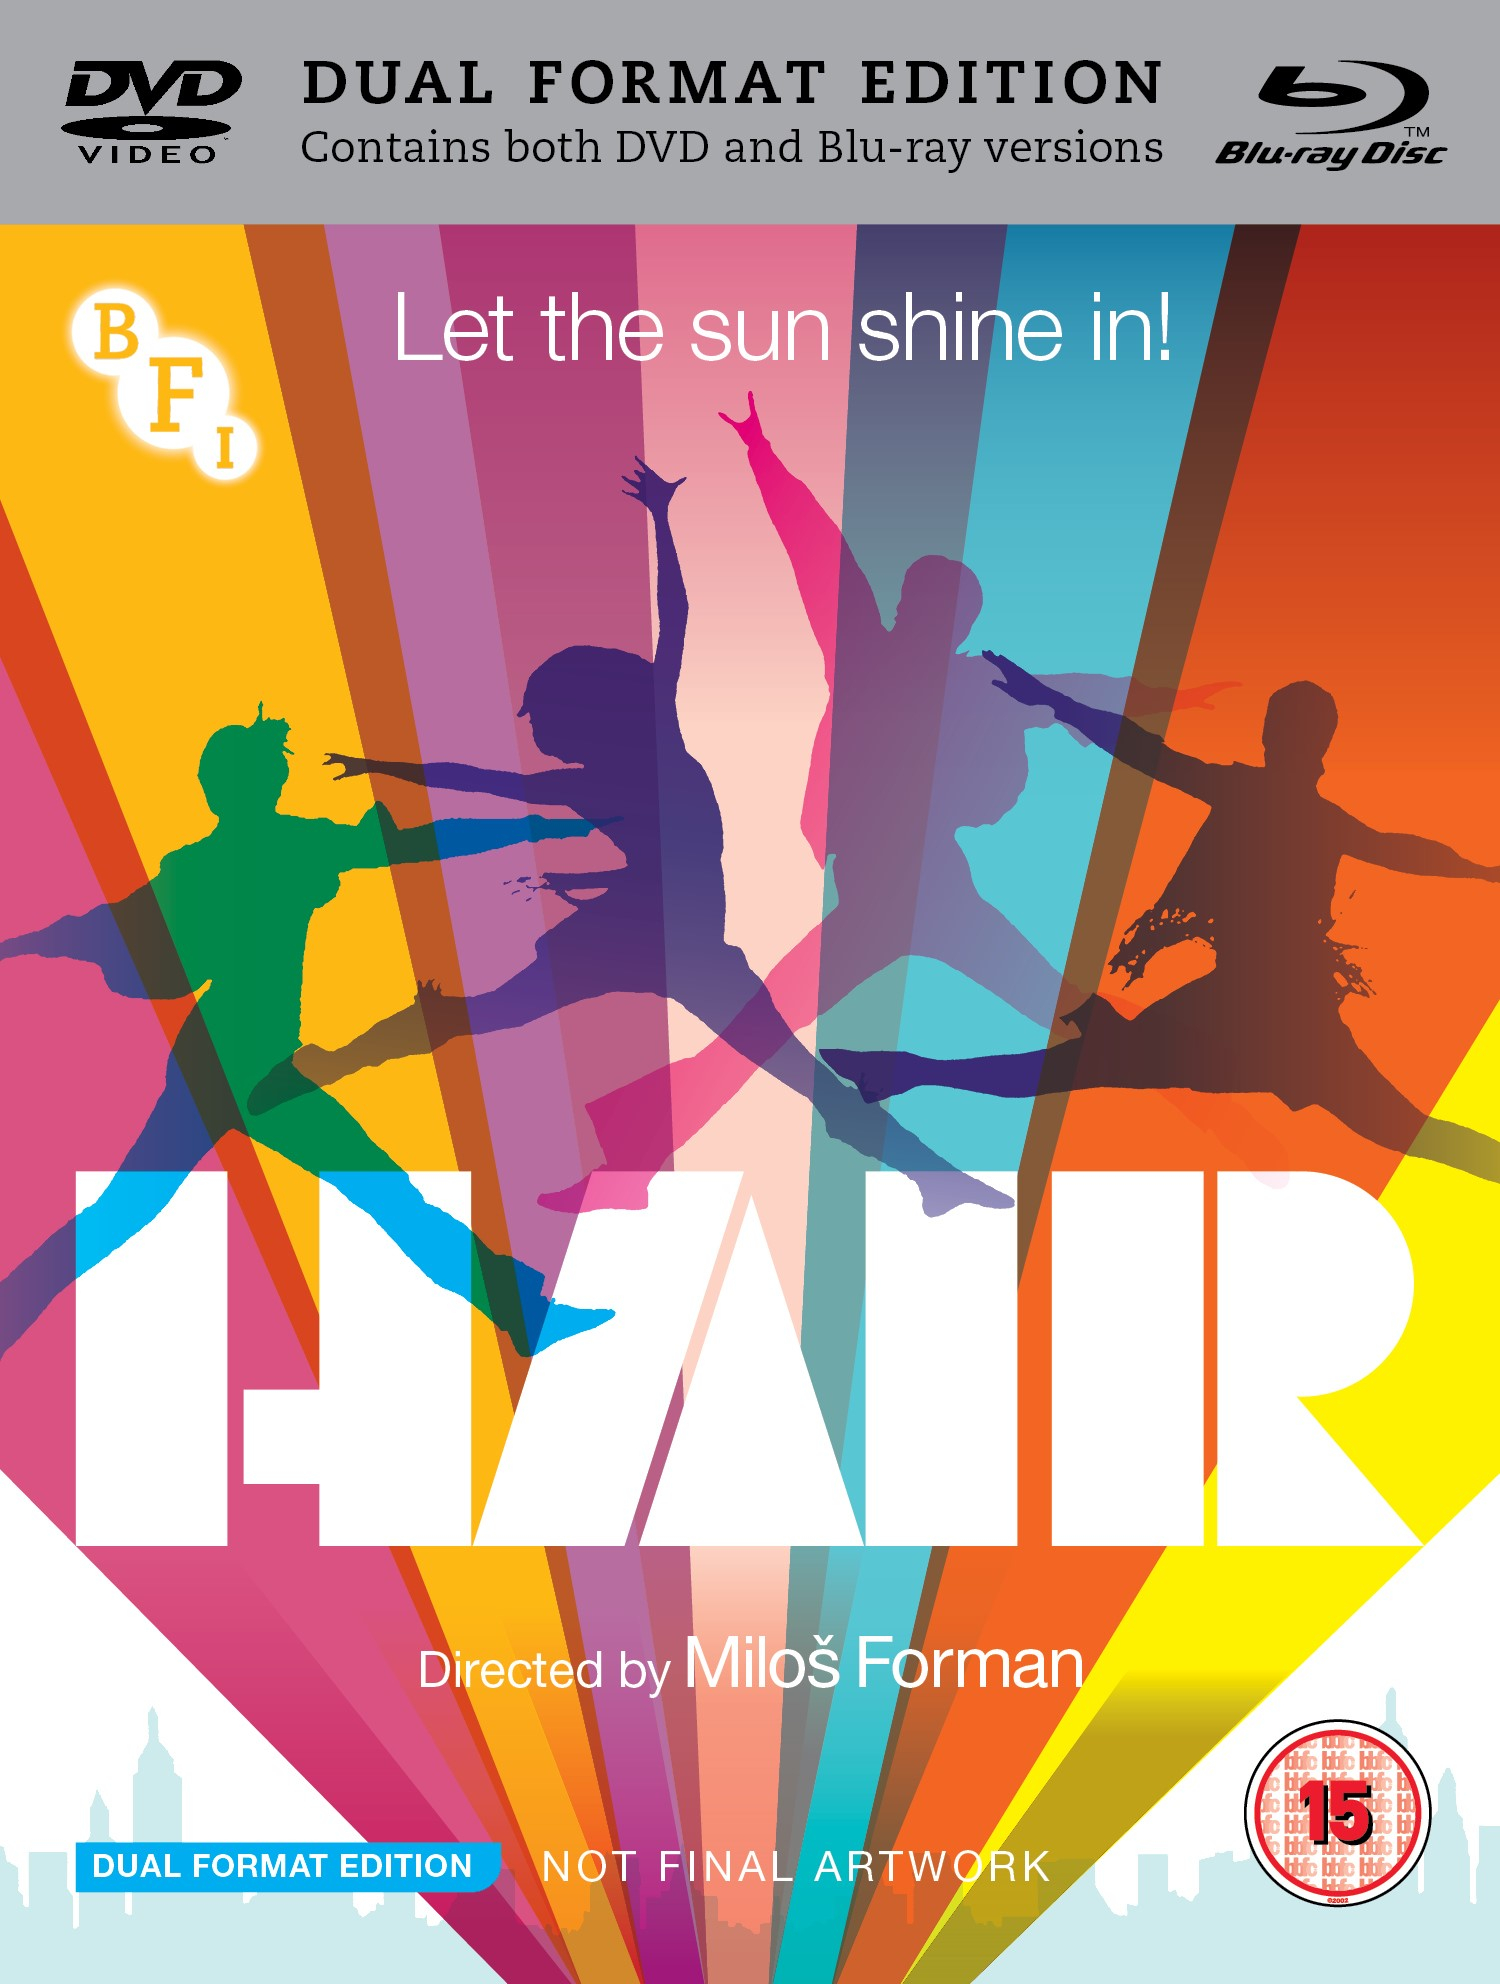 Buy PRE-ORDER Hair (40th Anniversary Dual Format Edition)